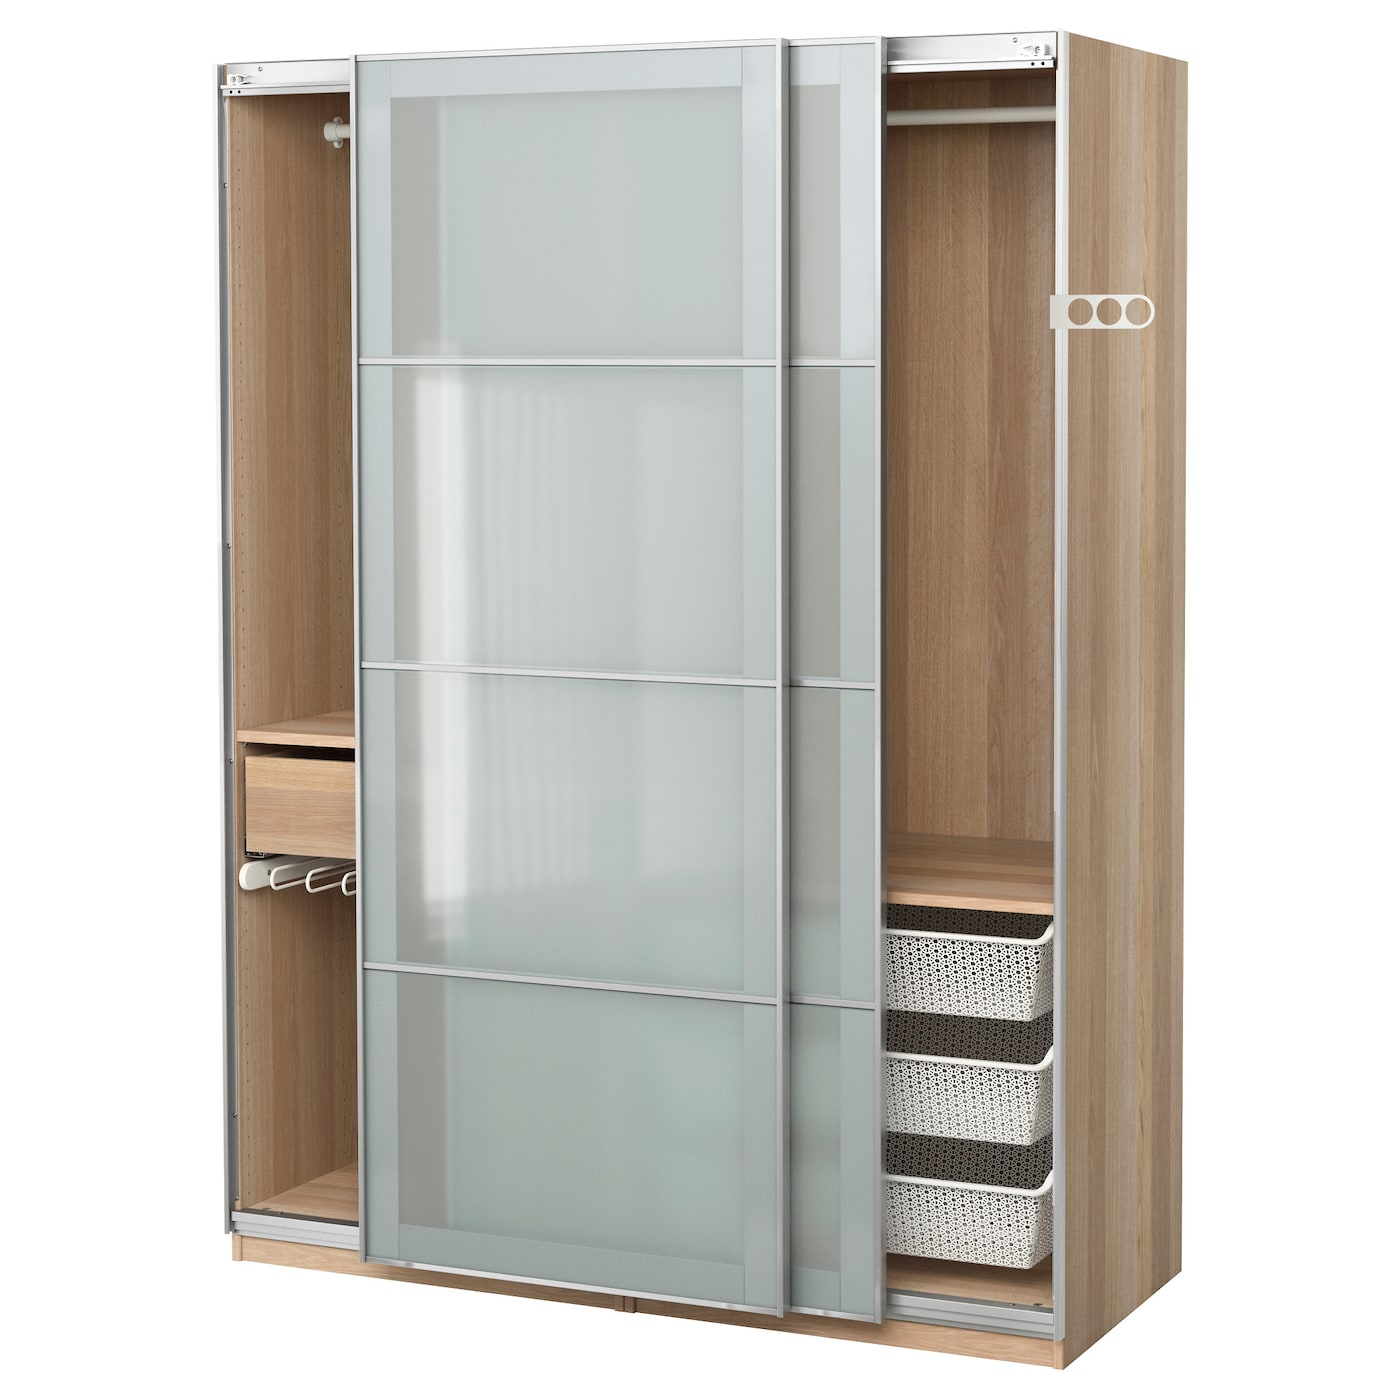 pax wardrobe white stained oak effect sekken frosted glass 150x66x201 cm ikea. Black Bedroom Furniture Sets. Home Design Ideas